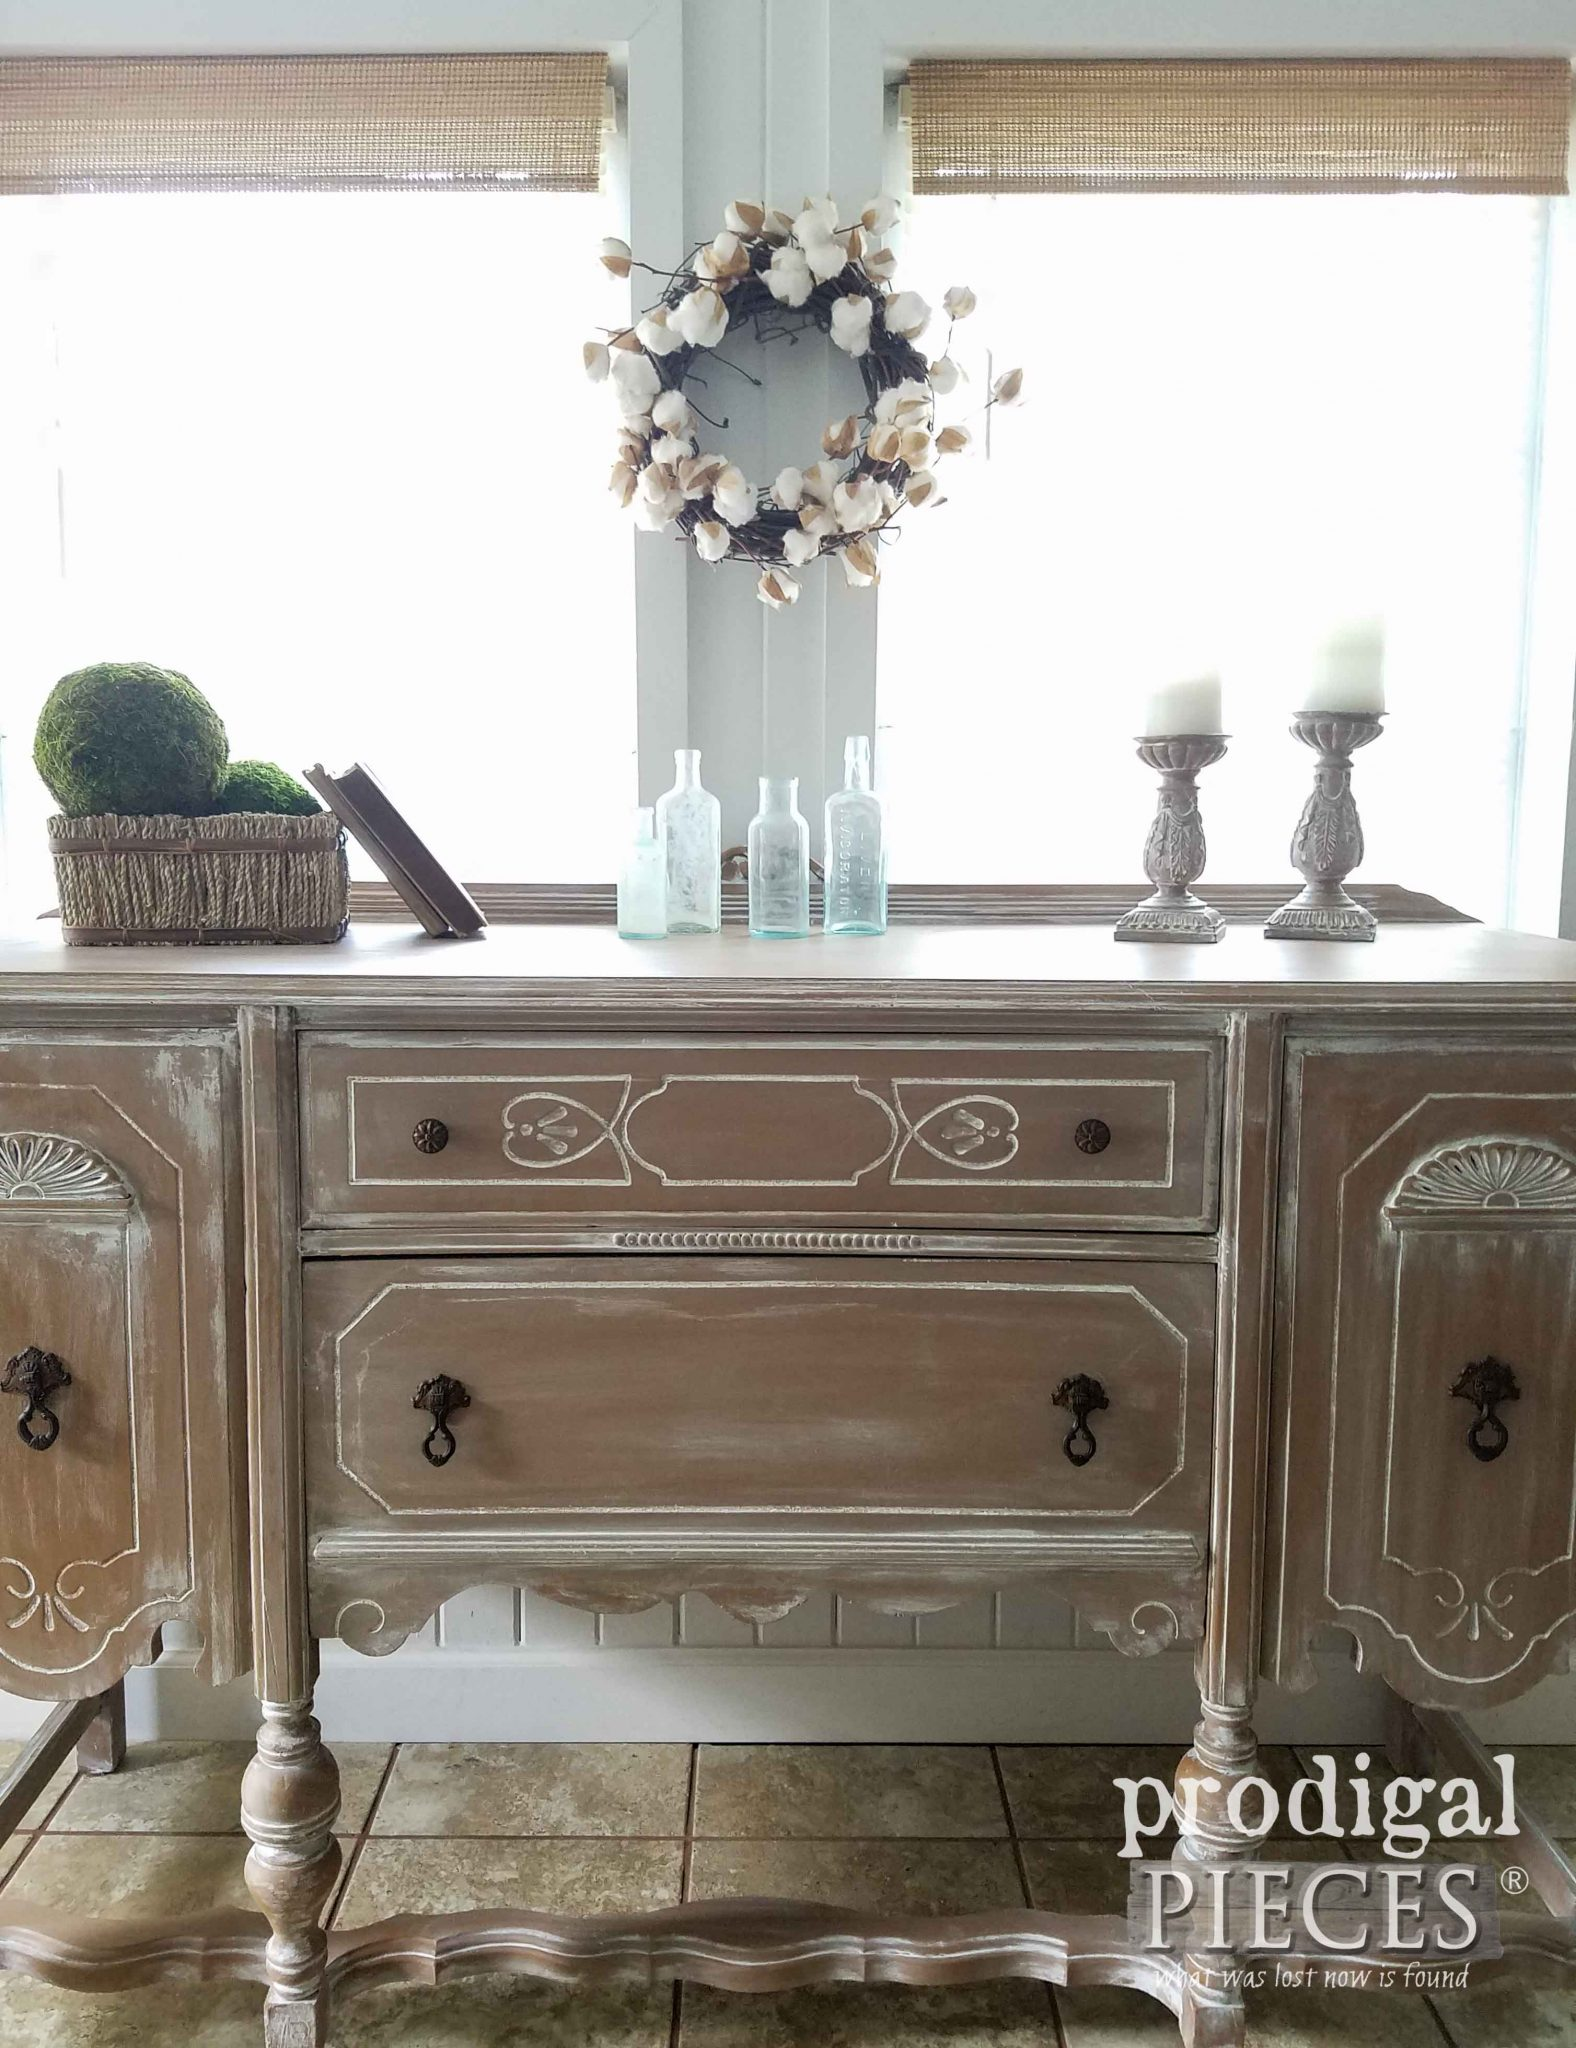 Rustic Chic Buffet with Farmhouse Feel by Prodigal Pieces | prodigalpieces.com